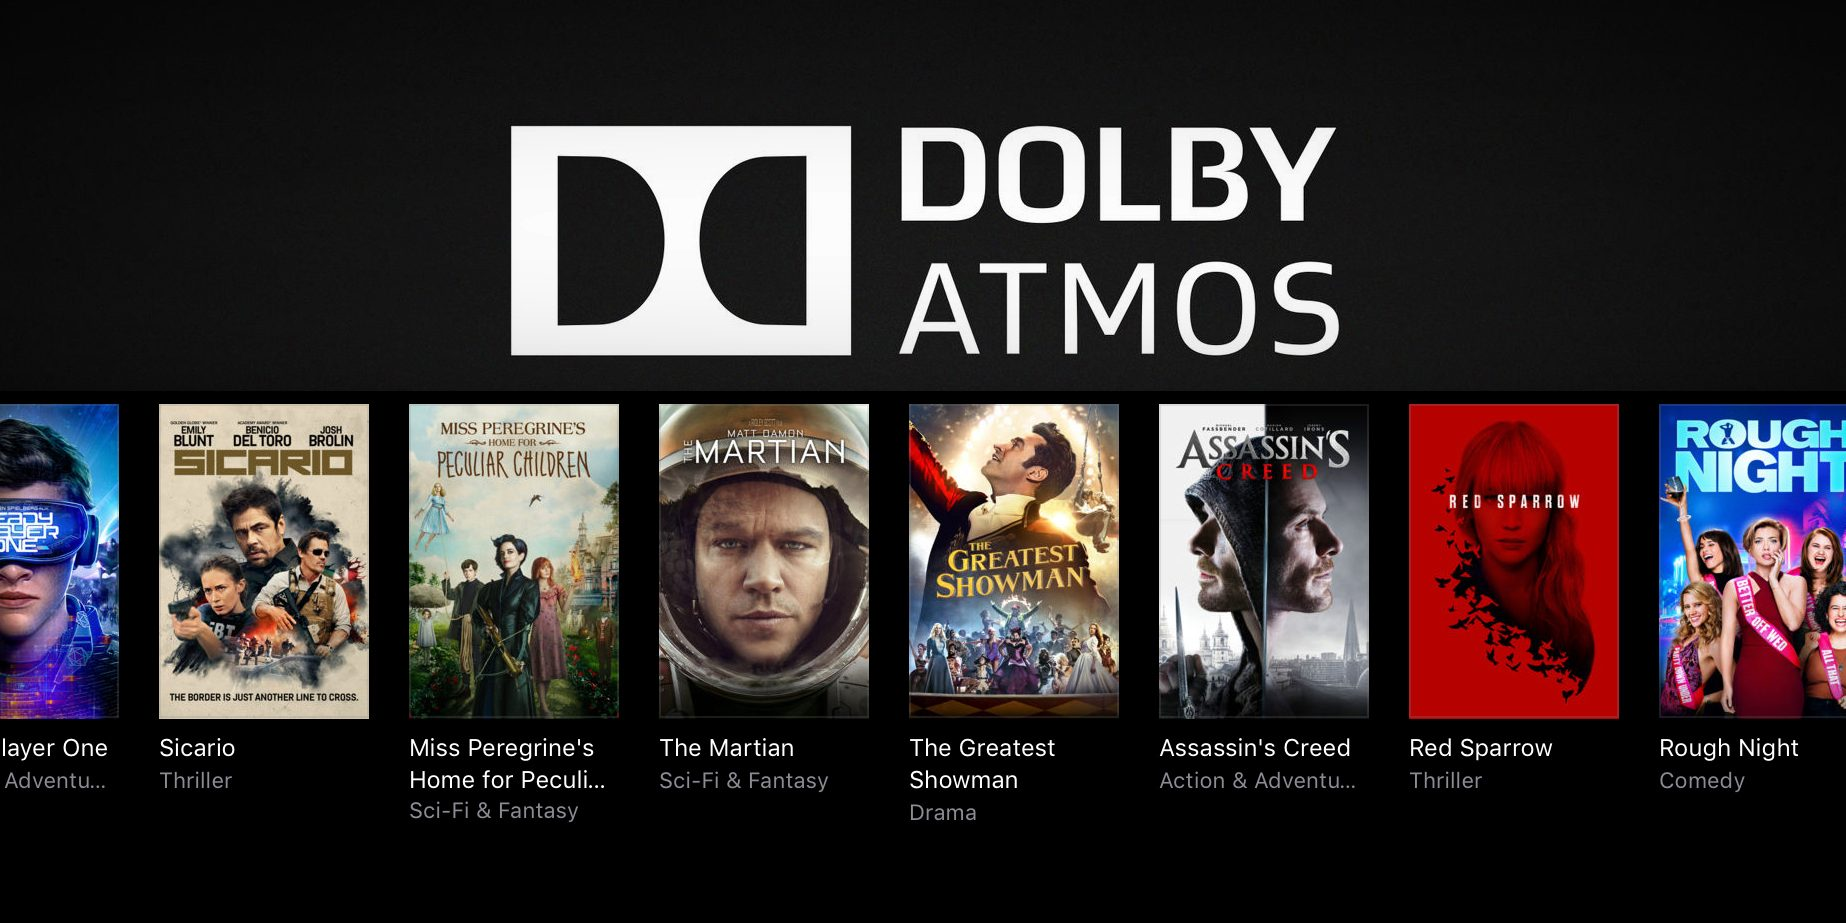 itunes launches massive dolby atmos 4k movie sale from 5 plus this week s 1 rental more